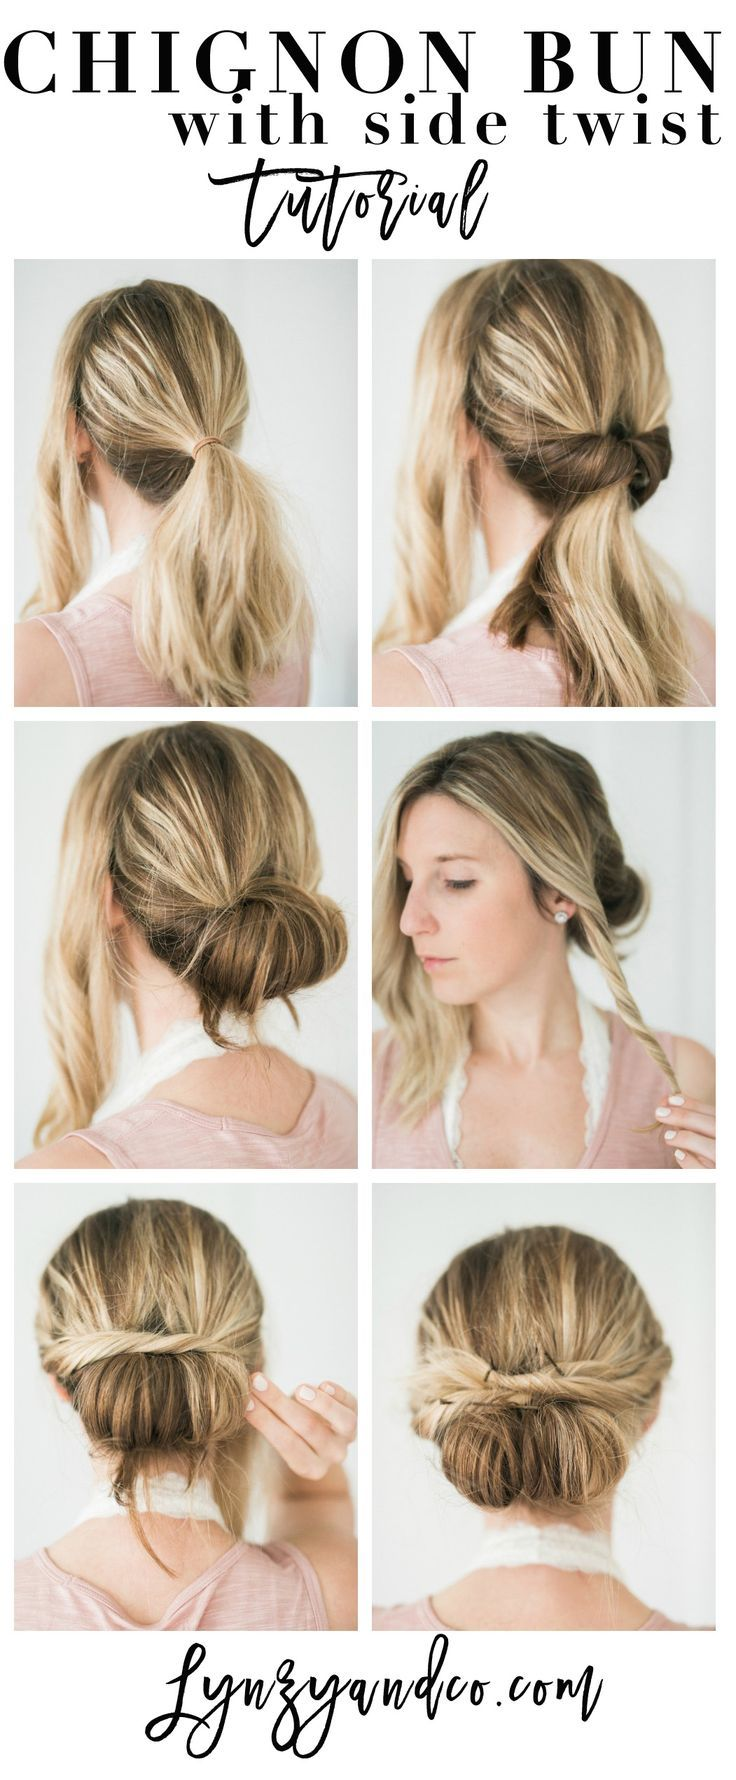 Simple Hair Tutorial // Chignon Bun with Twist